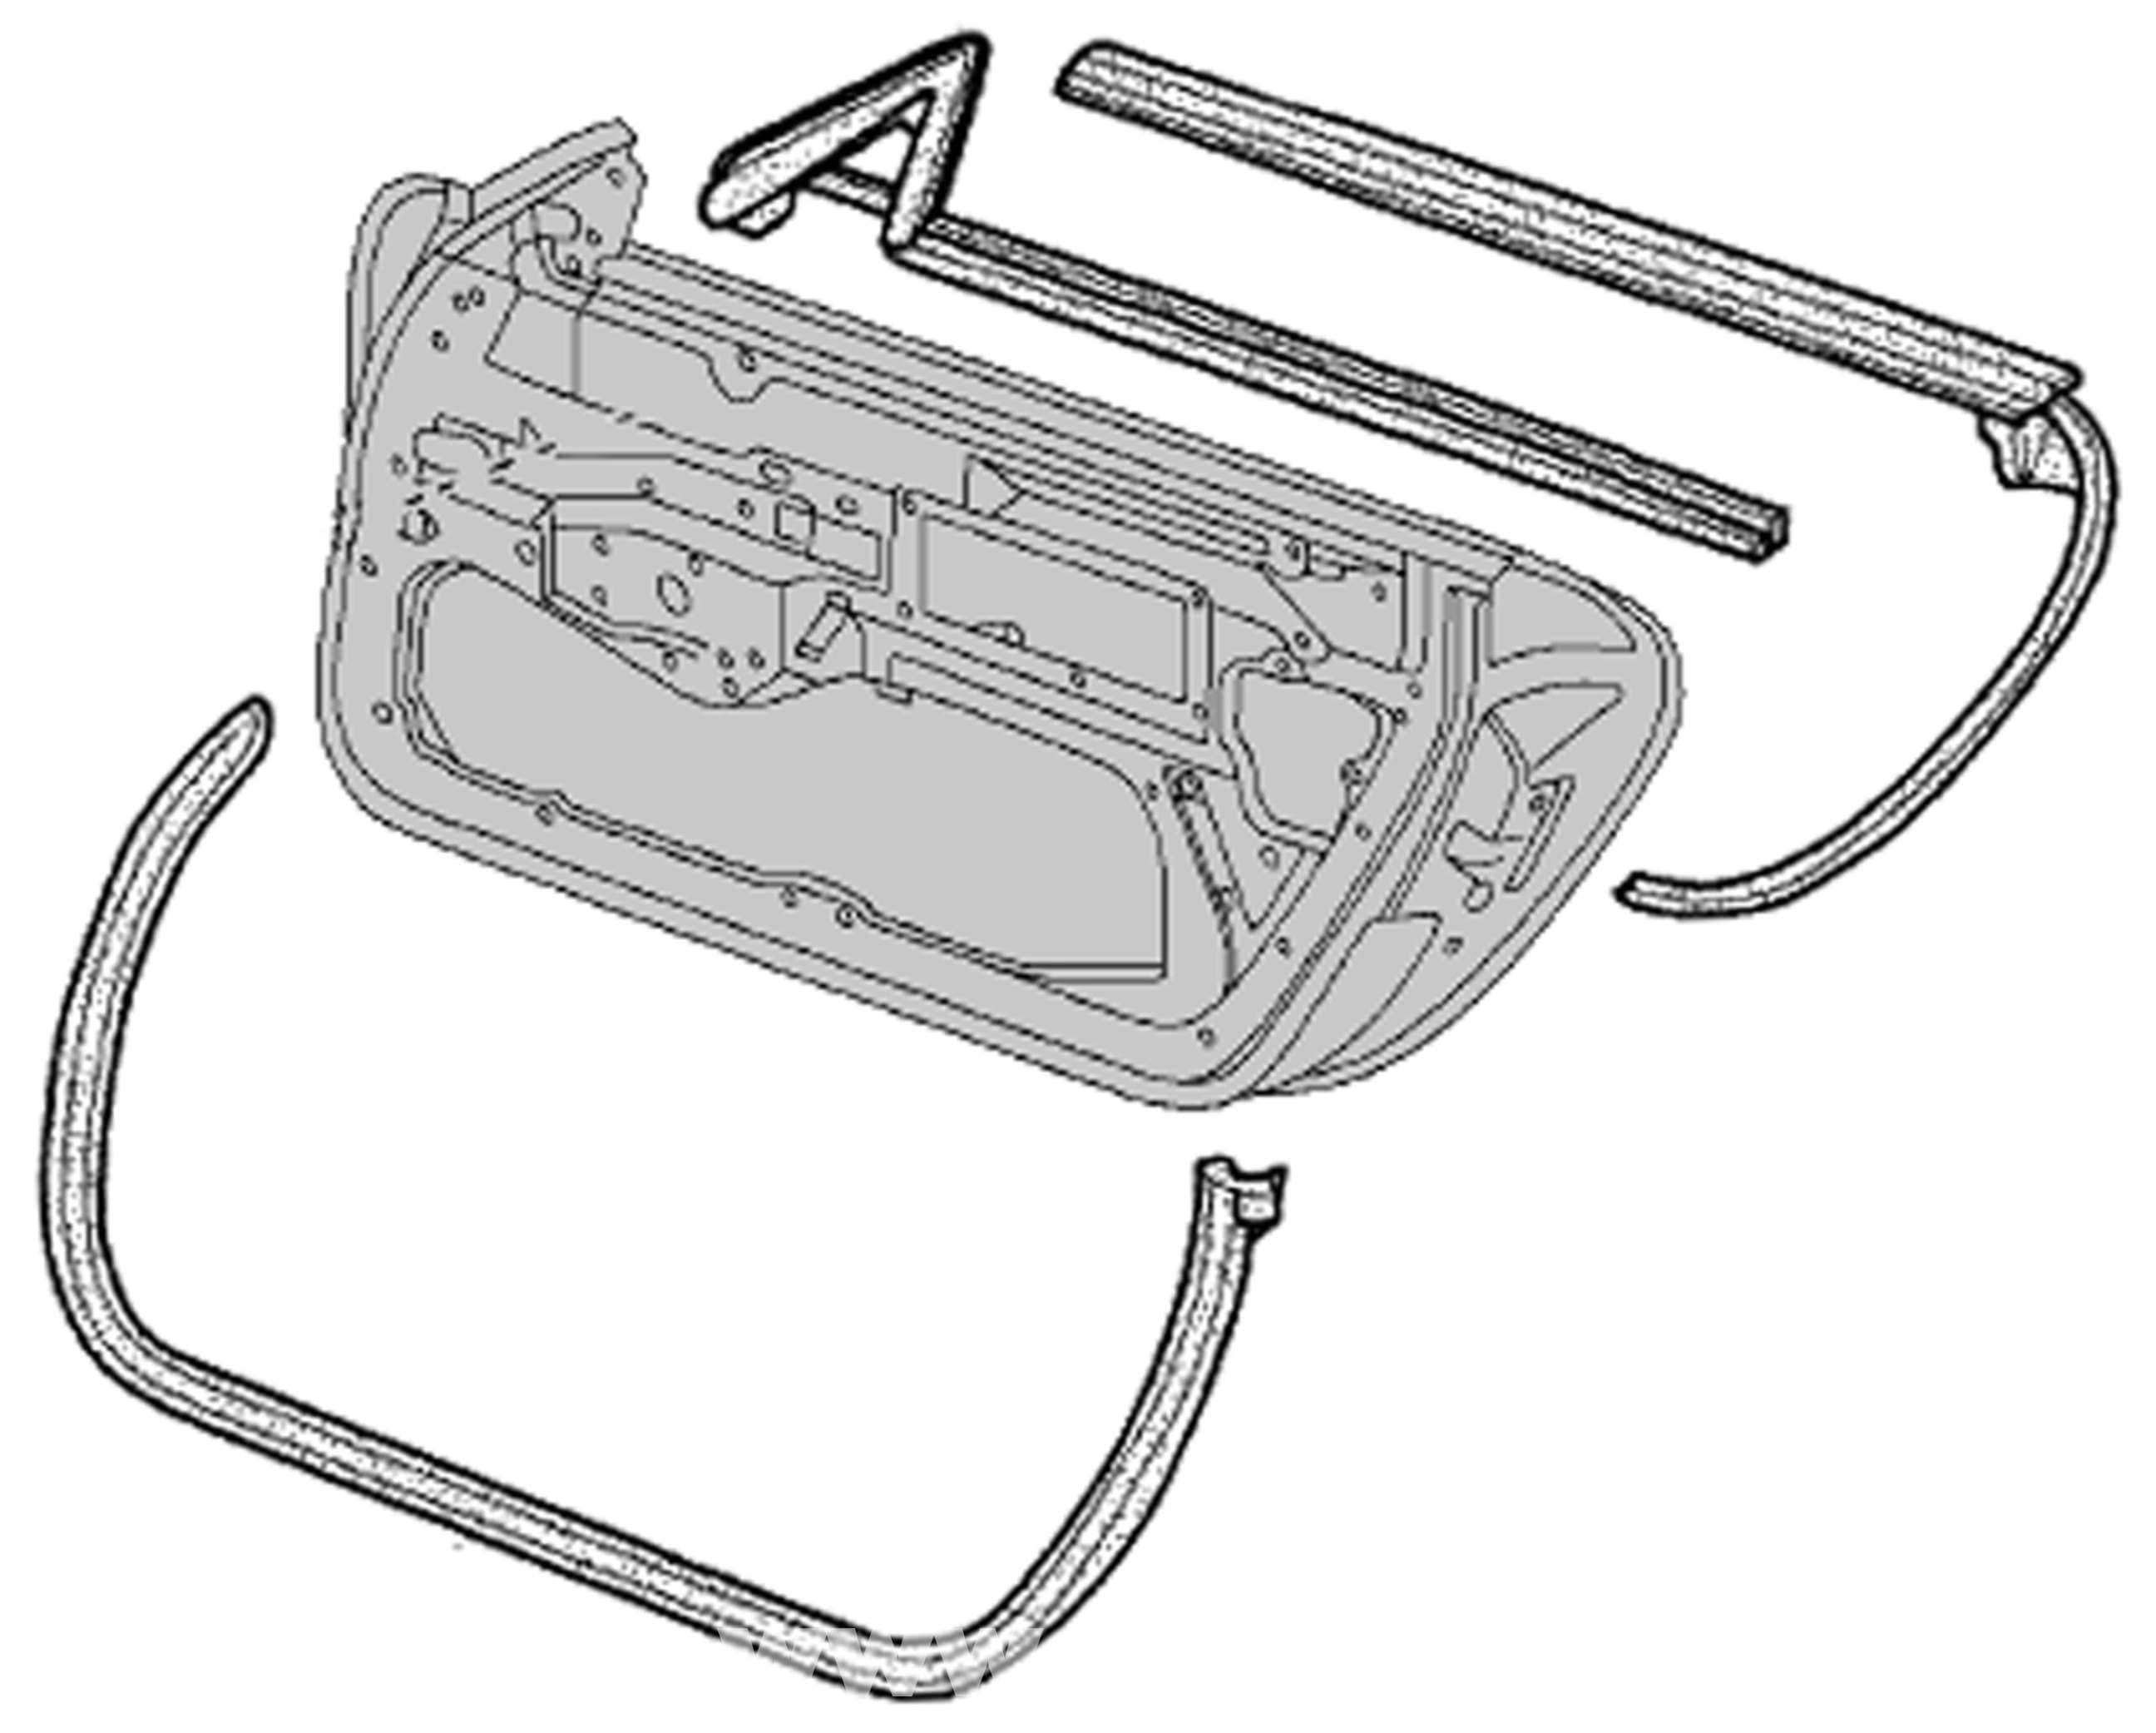 Porsche Boxster Door Panel Removal Mirror Switch Replacement 986 Saab 9 3 Convertible Wiring Diagram Large Image Extra